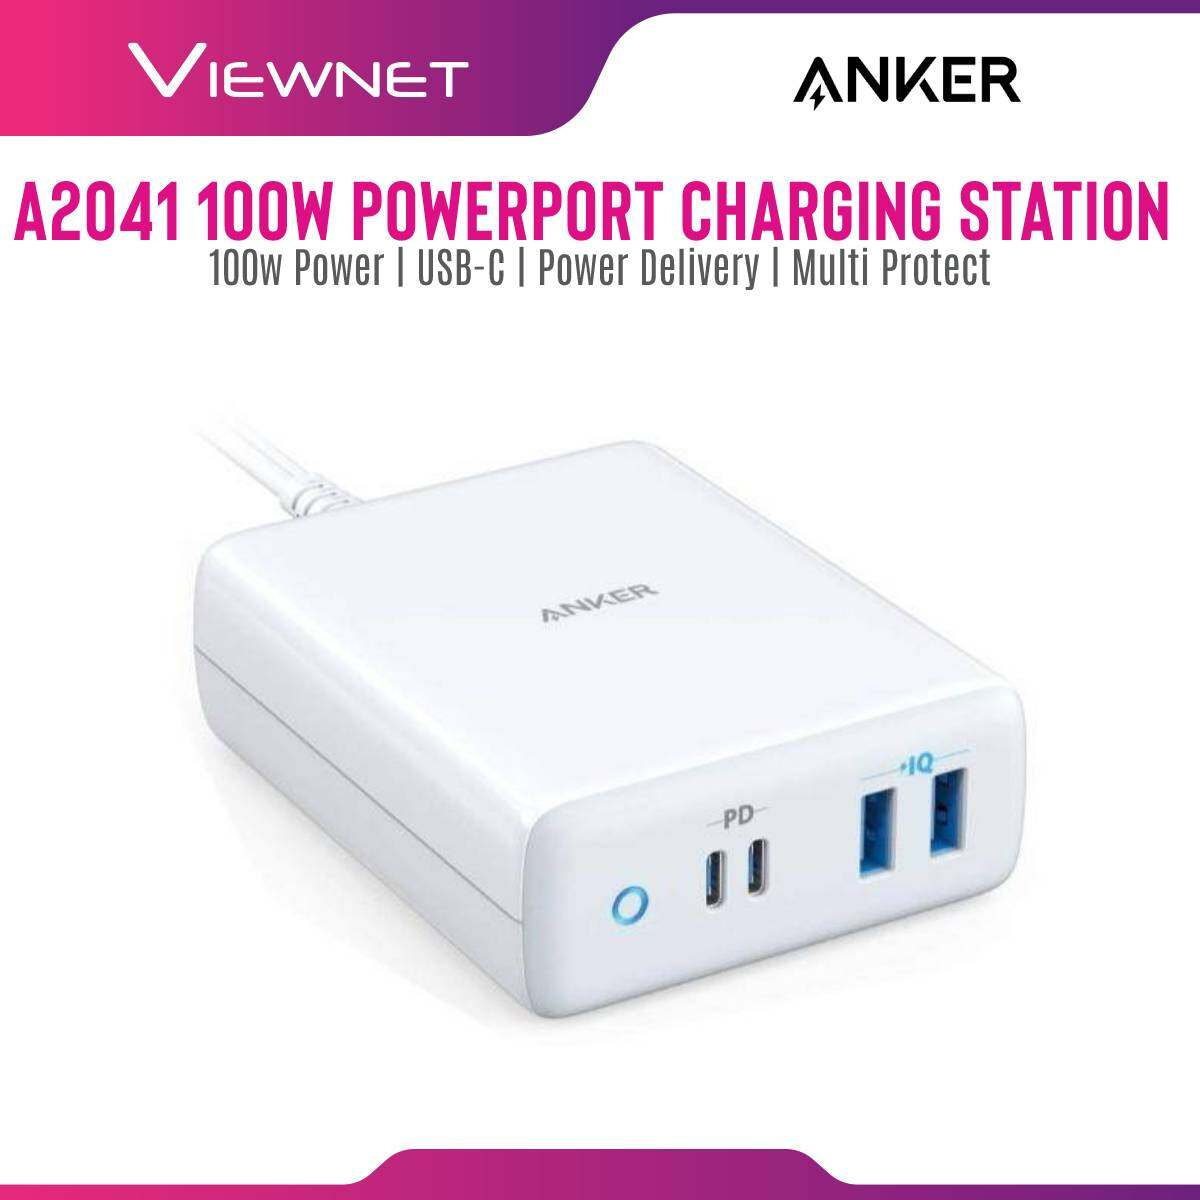 Anker A2041 100W PowerPort Atom PD 4 Type-C 4-Port Charging Station with Power Delivery - MY Plug